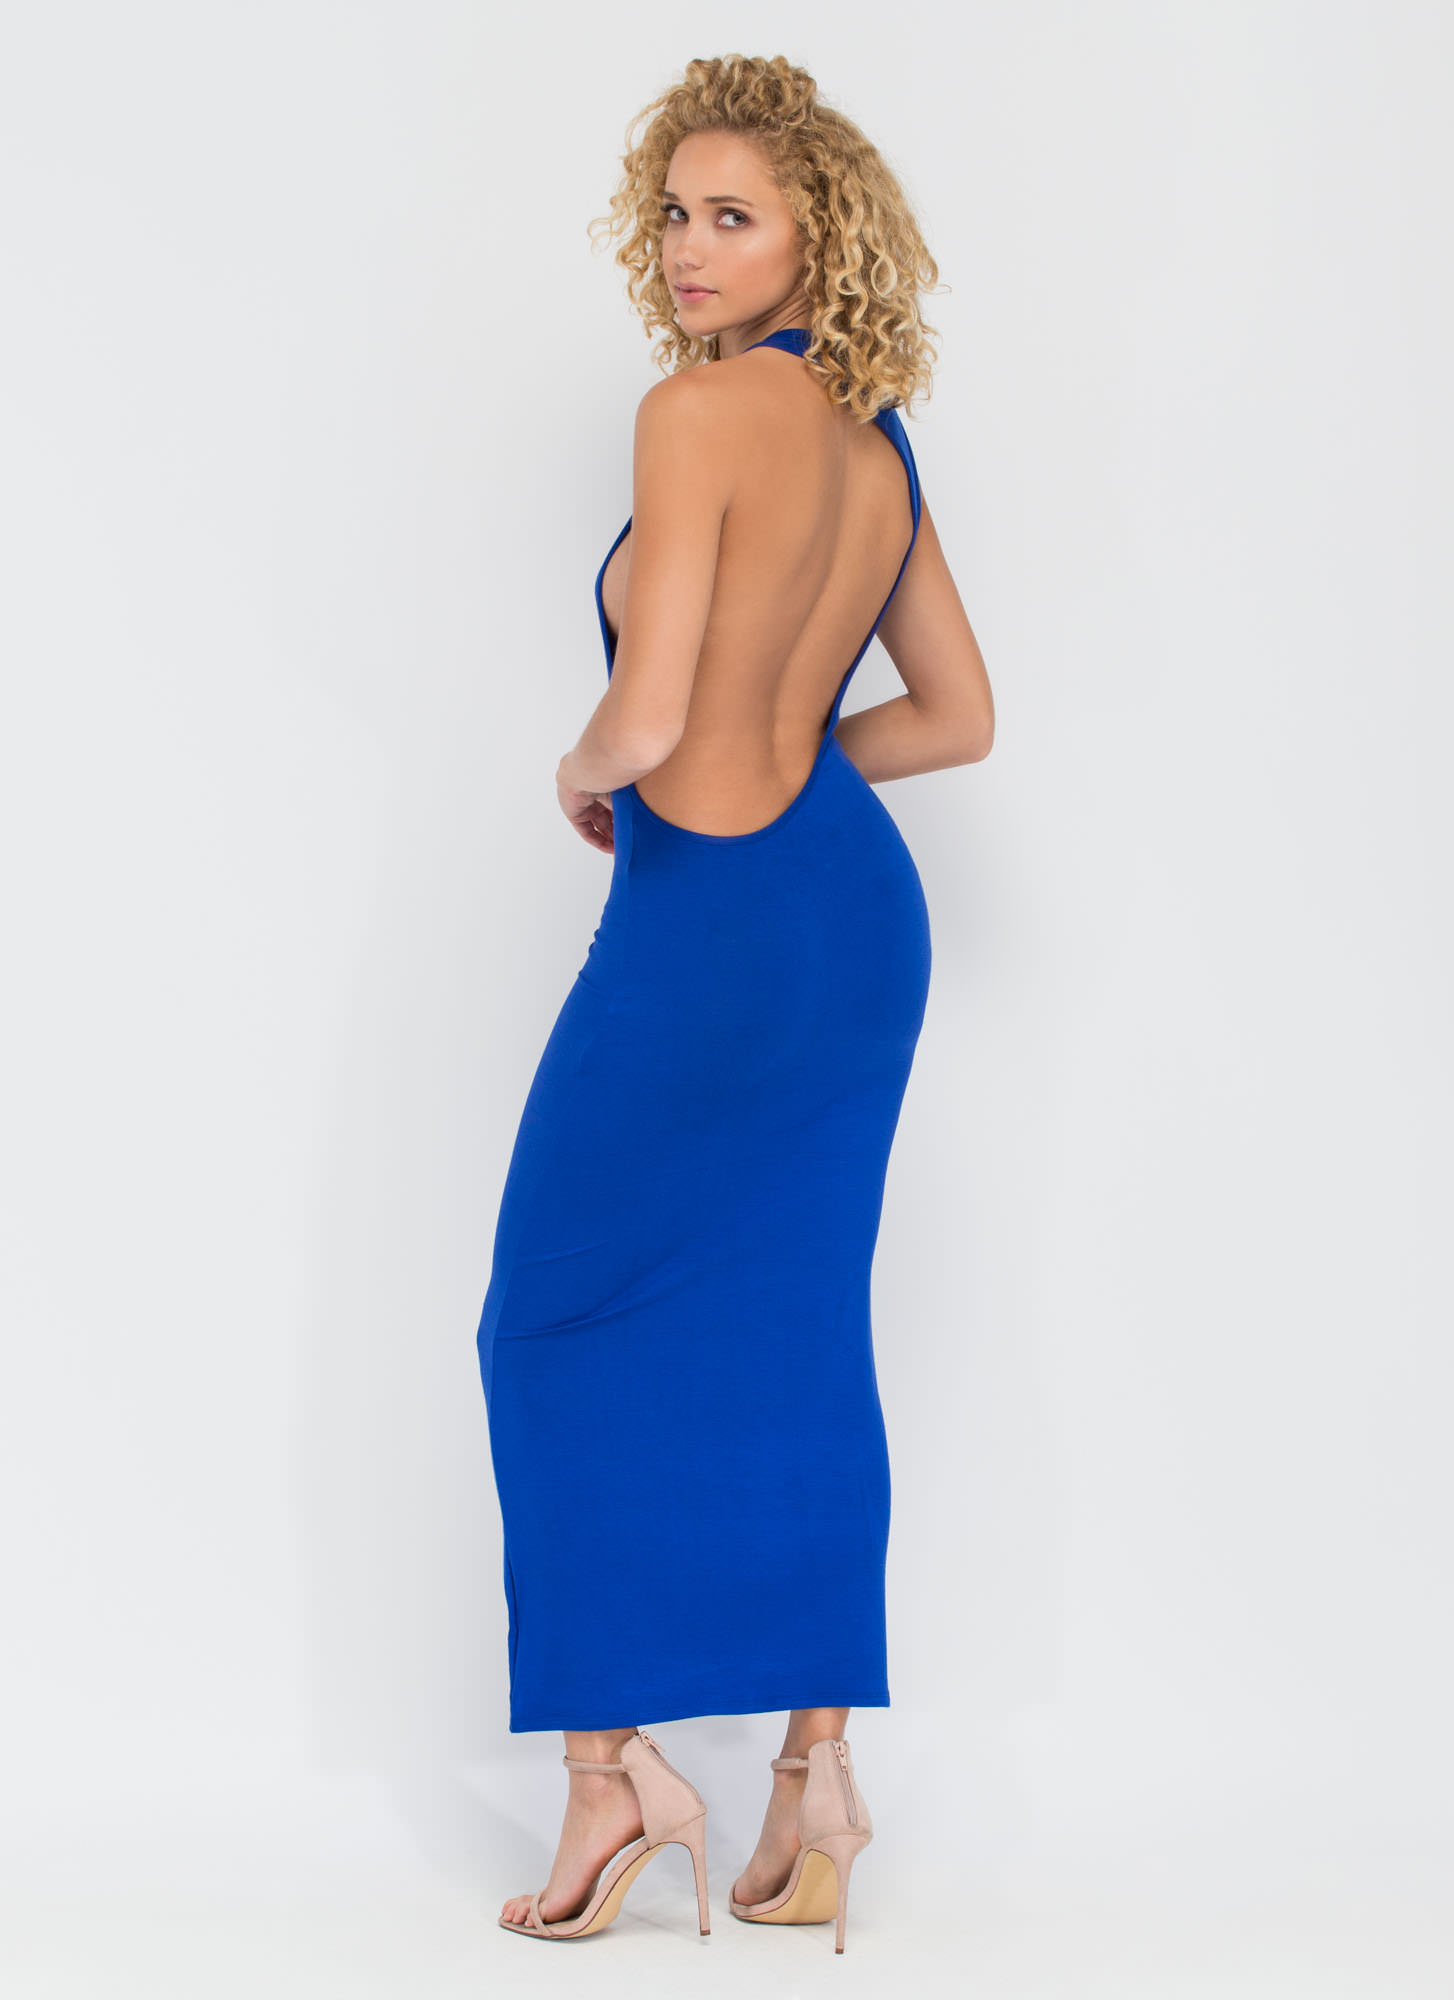 Go Halfsies Open Back Maxi Dress ROYAL (Final Sale)